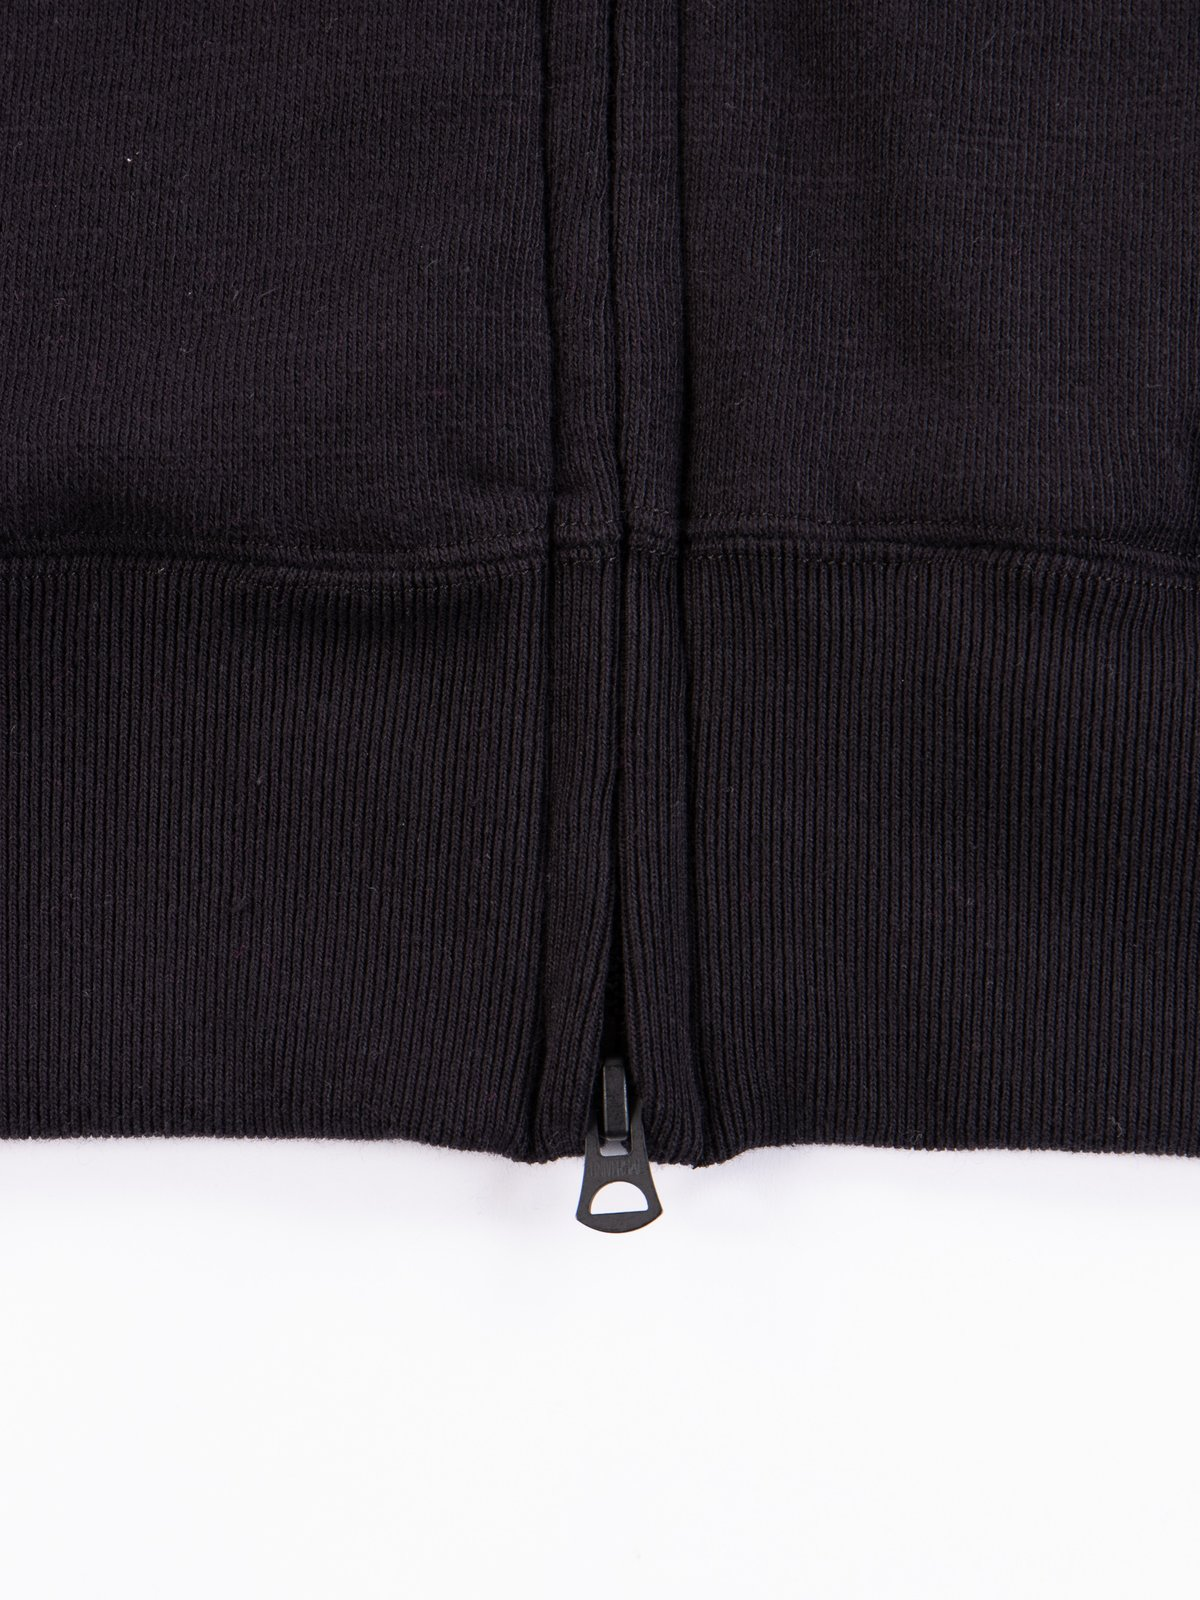 Black GG Full Zip Sweatshirt - Image 5